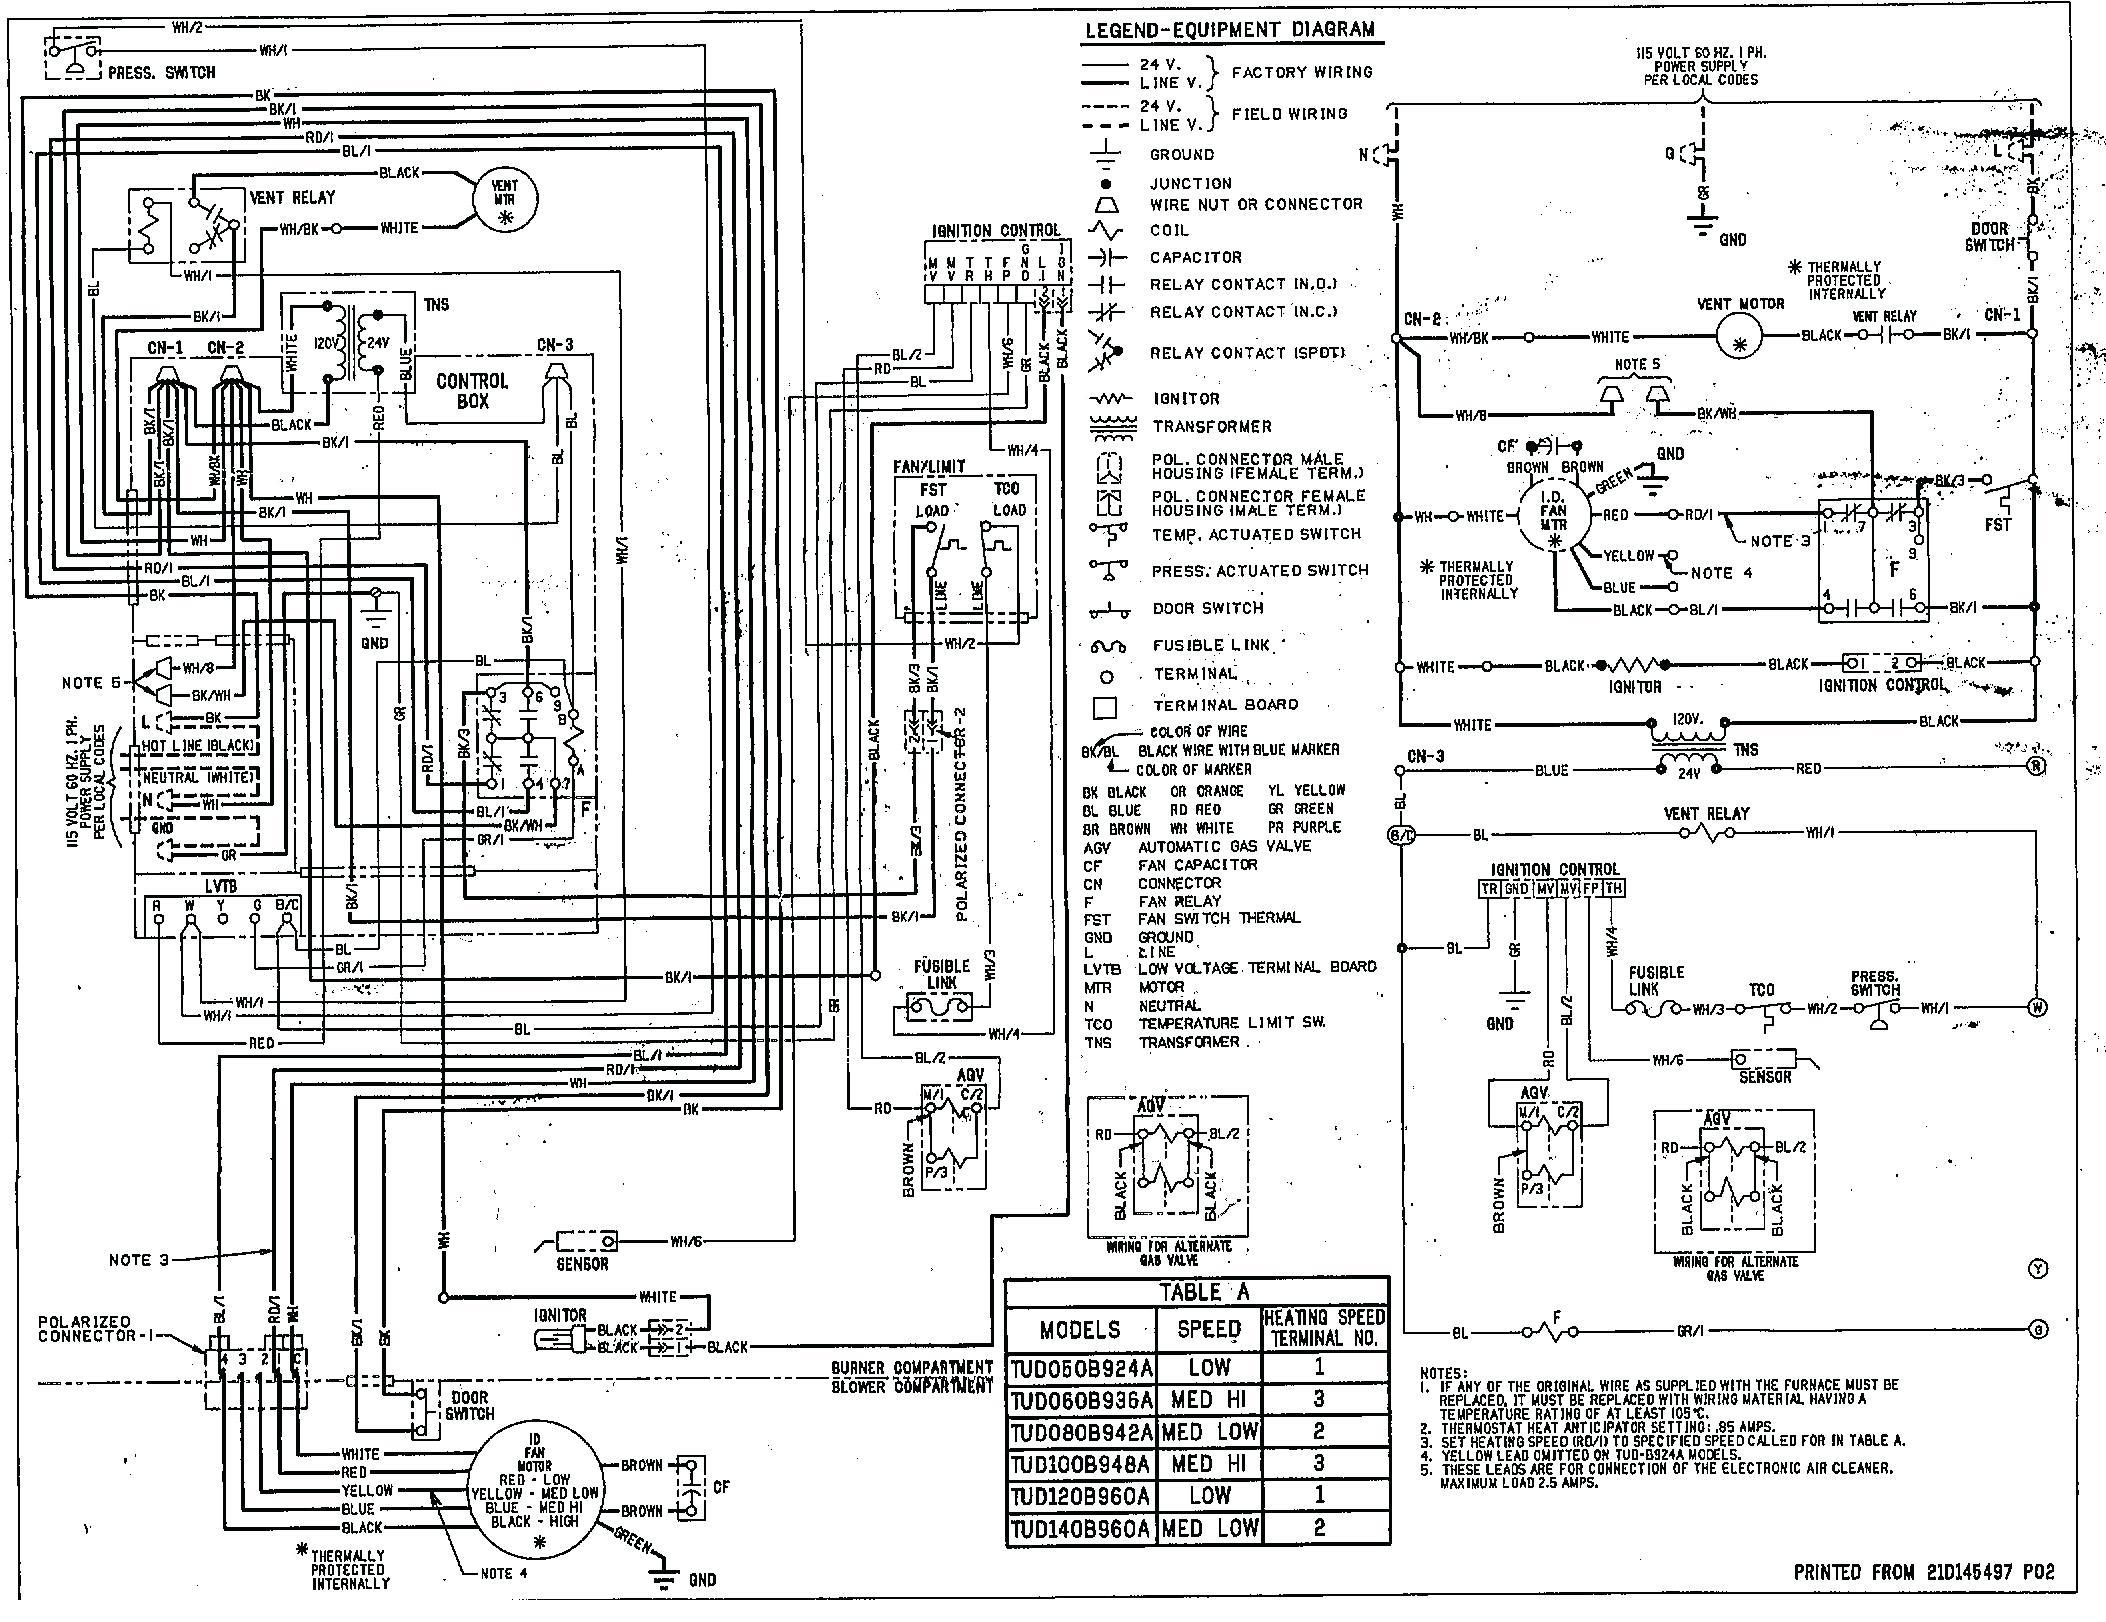 furnace control board wiring diagram Collection-Wireless Focuspro Thermostat Trane Xl80 Furnace Wiring Diagram I Have Found The Control Box Circuit Board Lennox To Older Gas At Trane Wiring Diagram 14-l